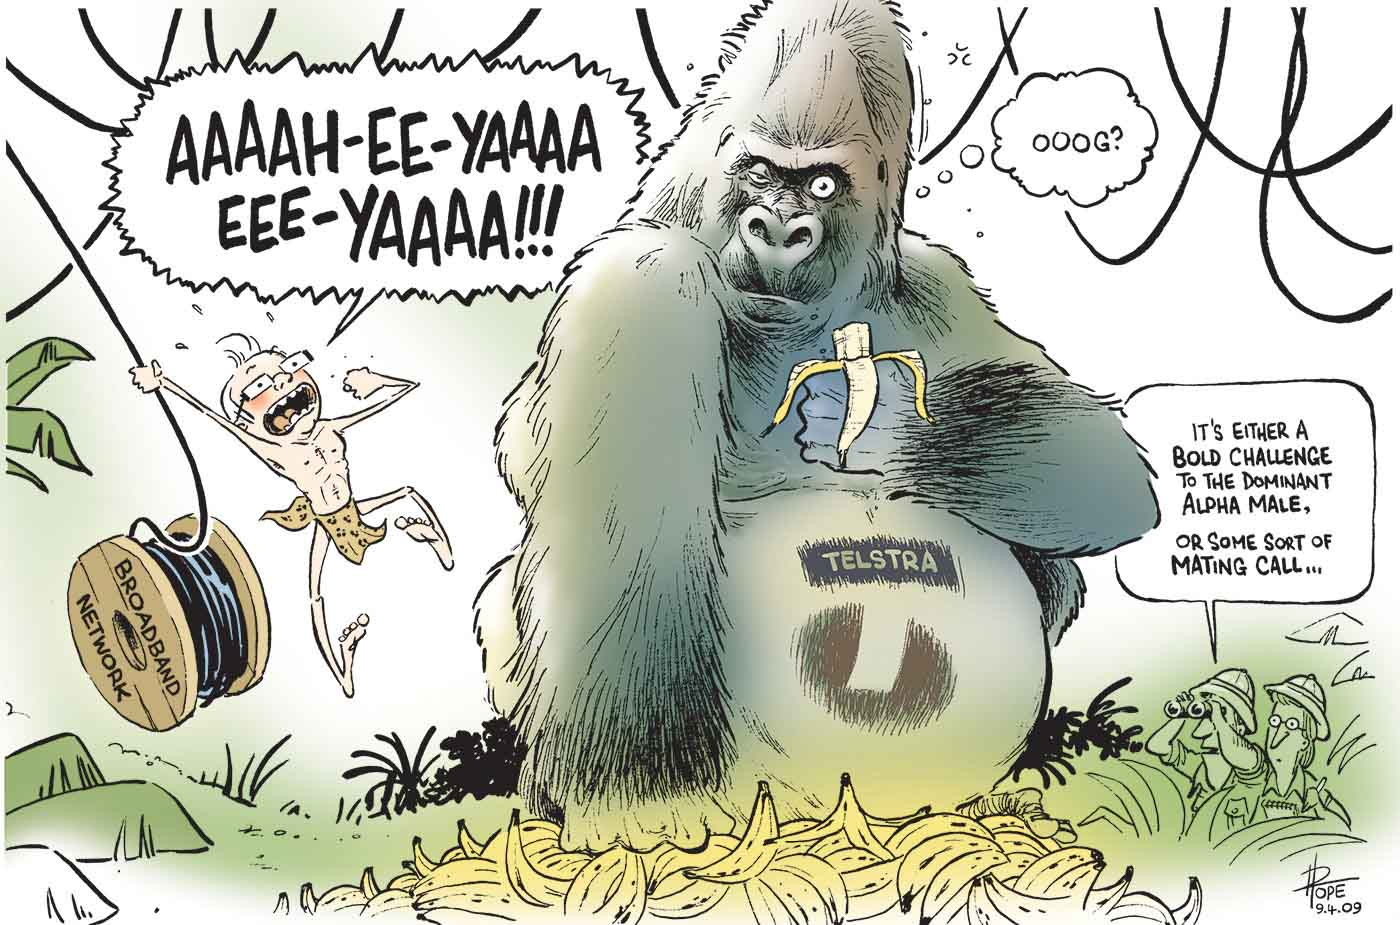 "A colour cartoon depicting Kevin Rudd as Tarzan. He is swinging in from the left side of the image, holding onto some cable that is paying out from a wooden roll marked 'Broadband Network'. Mr Rudd is calling out 'Aaaah-ee-yaaaa eee-yaaaa!!!' as he swings. In the centre of the image sits a large gorilla with the Telstra logo on its belly. It is eating a banana and appears to be non-plussed by the swinging figure. A thought bubble appears to the right of the gorilla's head. In the bubble is written 'Ooog?"". A large pile of bananas lies on the ground in front of the gorilla. To the right of the image, in some jungle undergrowth, are two men in explorer clothes. One observes the gorilla and Mr Rudd through binoculars and is saying 'It's either a bold challenge to the dominant alpha male, or some sort of mating call ...'.  - click to view larger image"